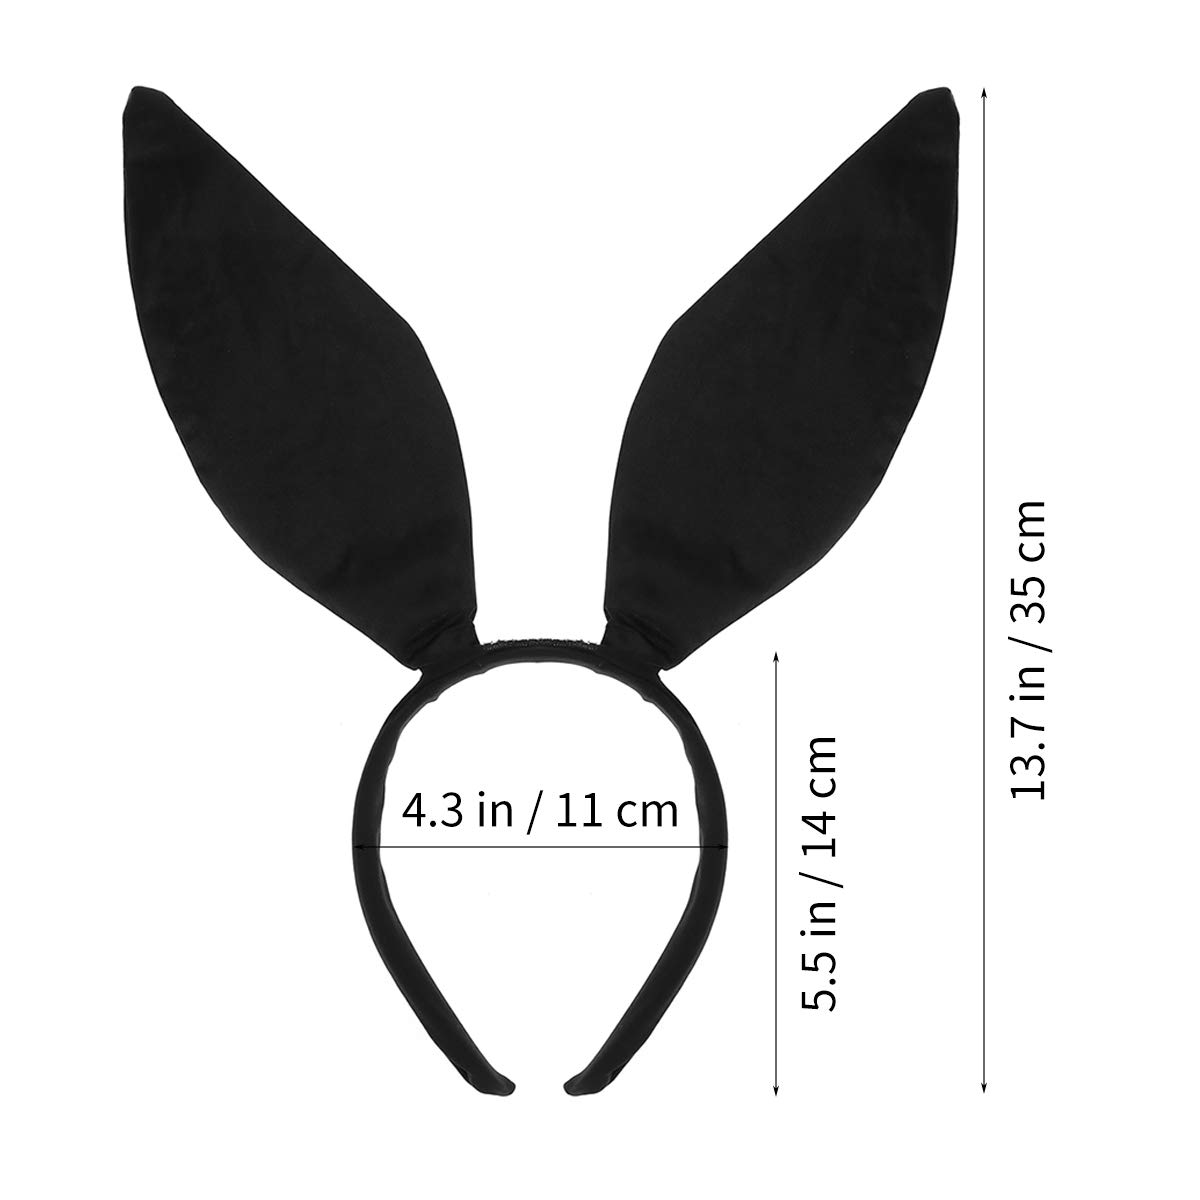 Bunny Ears Headband, Easter Sweet Sexy Rabbit Ear Hair Band for Party Cosplay Costume Accessory (Black)